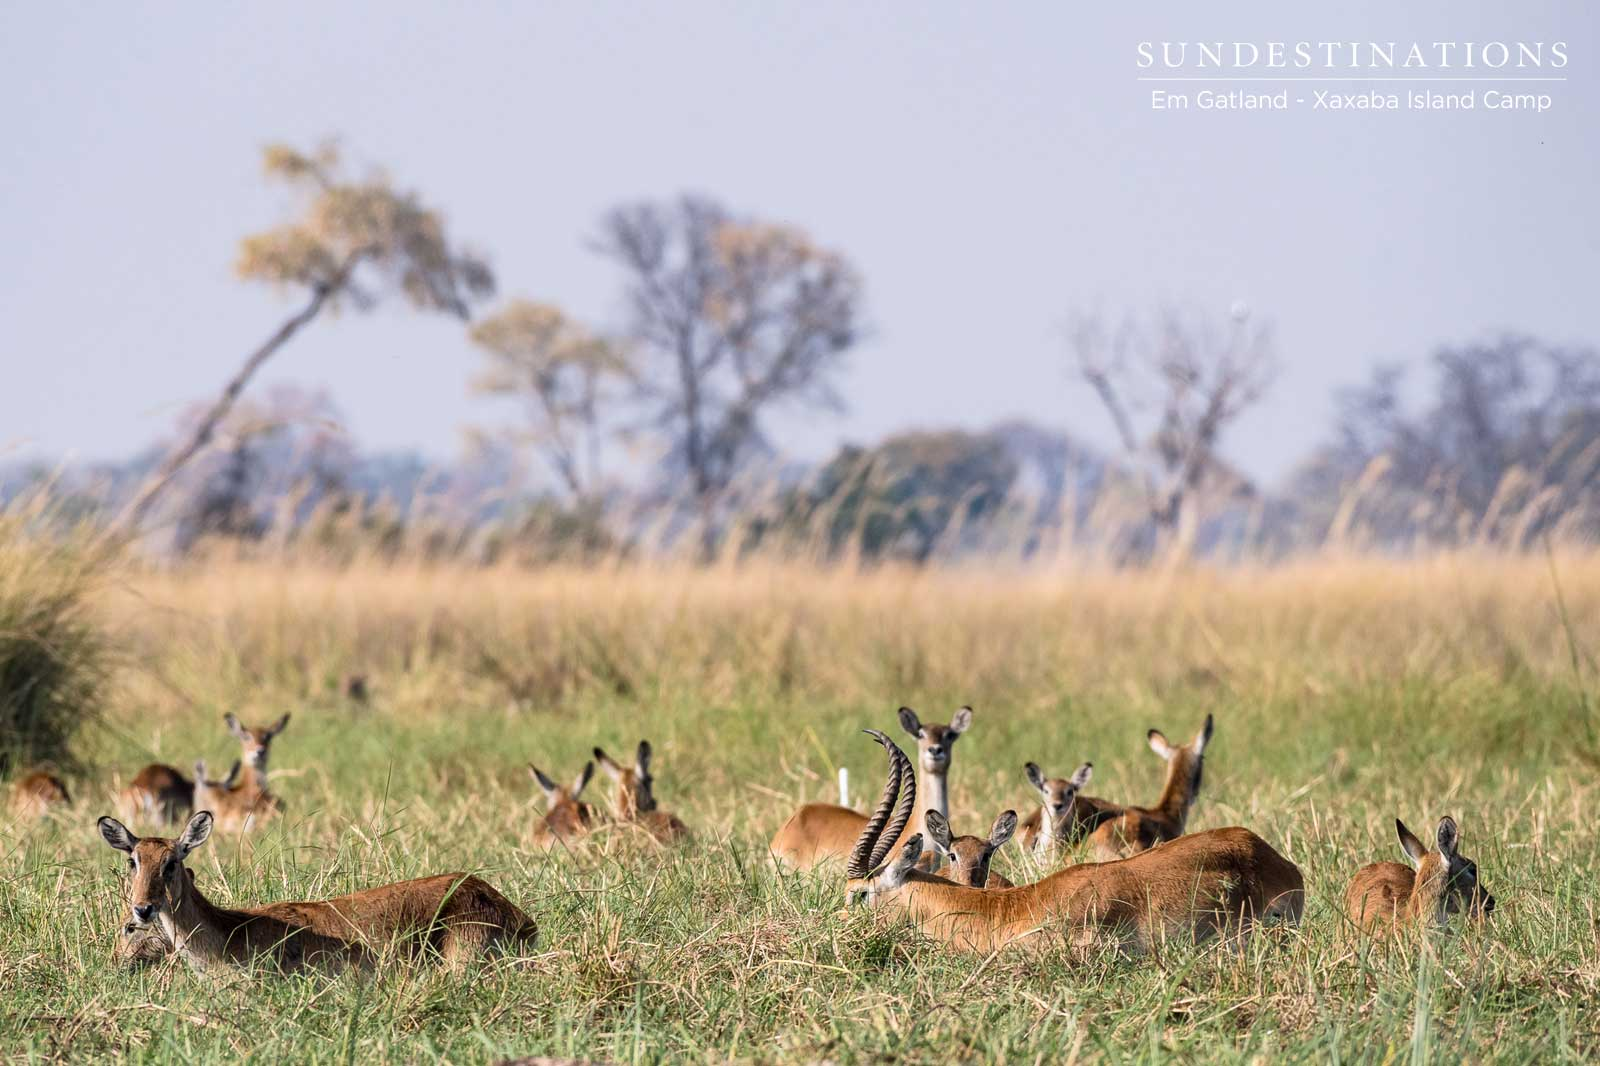 Red Lechwe Xaxaba